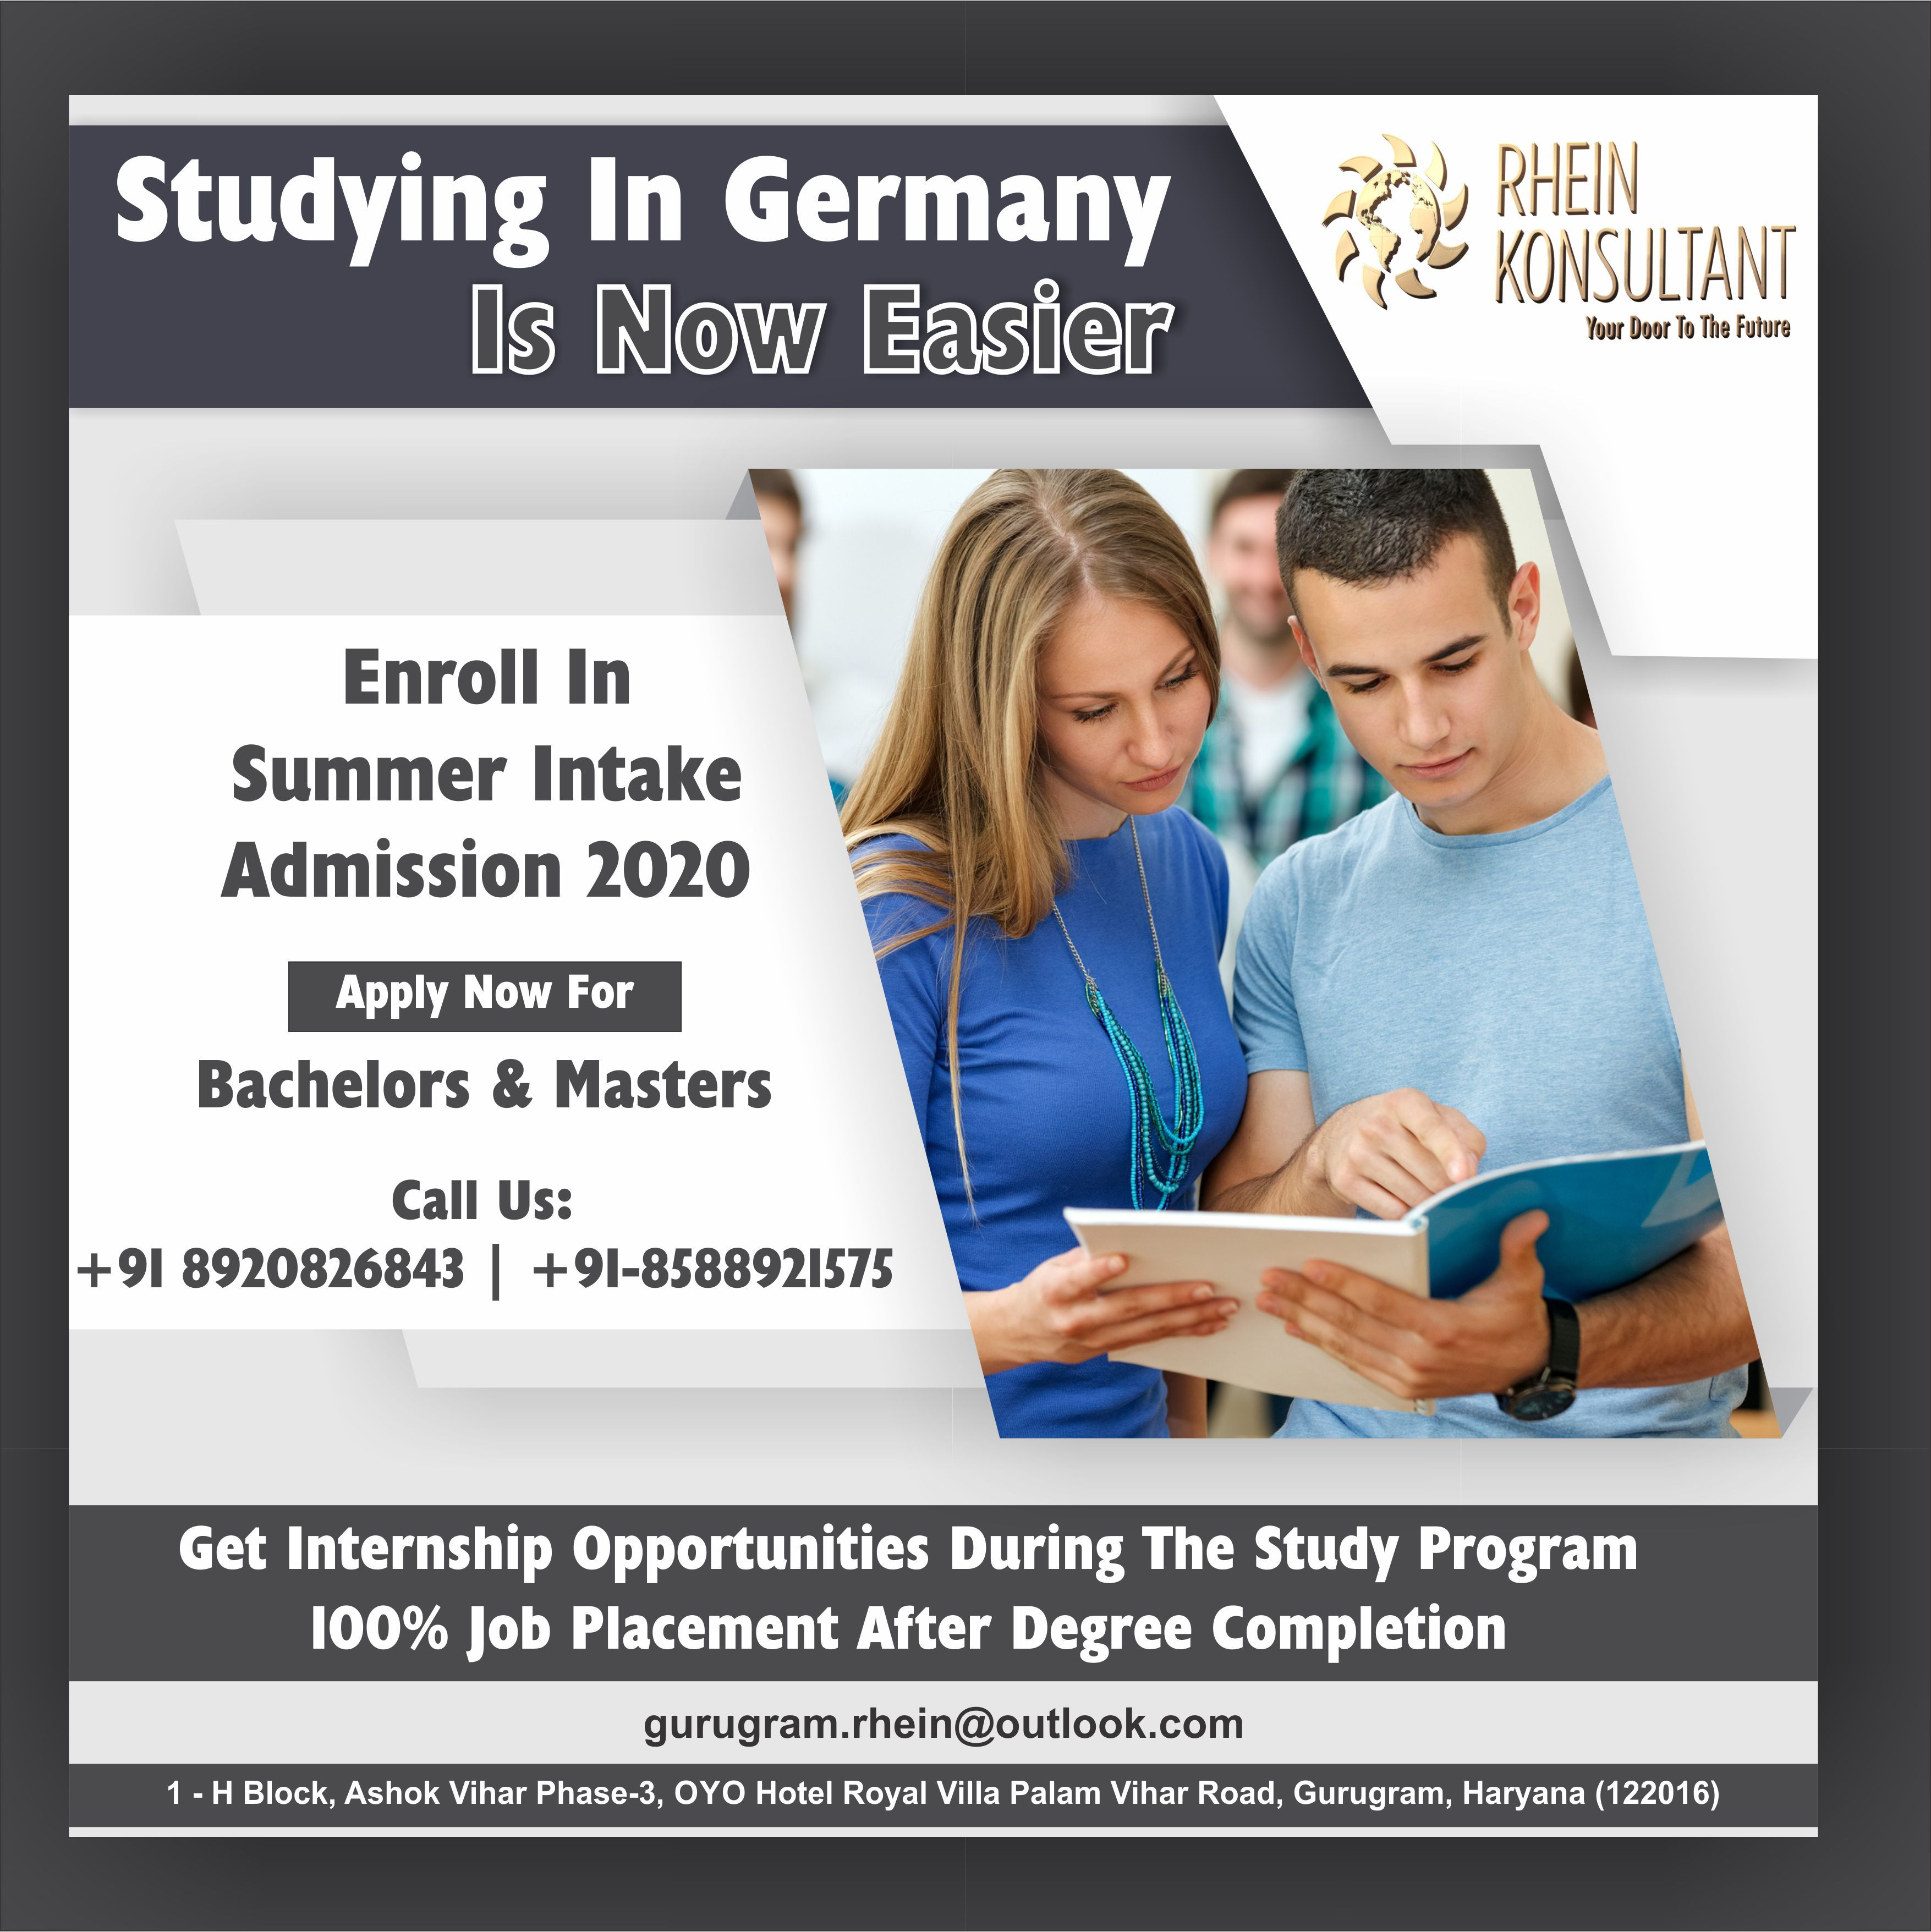 65bf4798abd01fa18dd072d485628235 - How To Get A Job In Germany After Masters